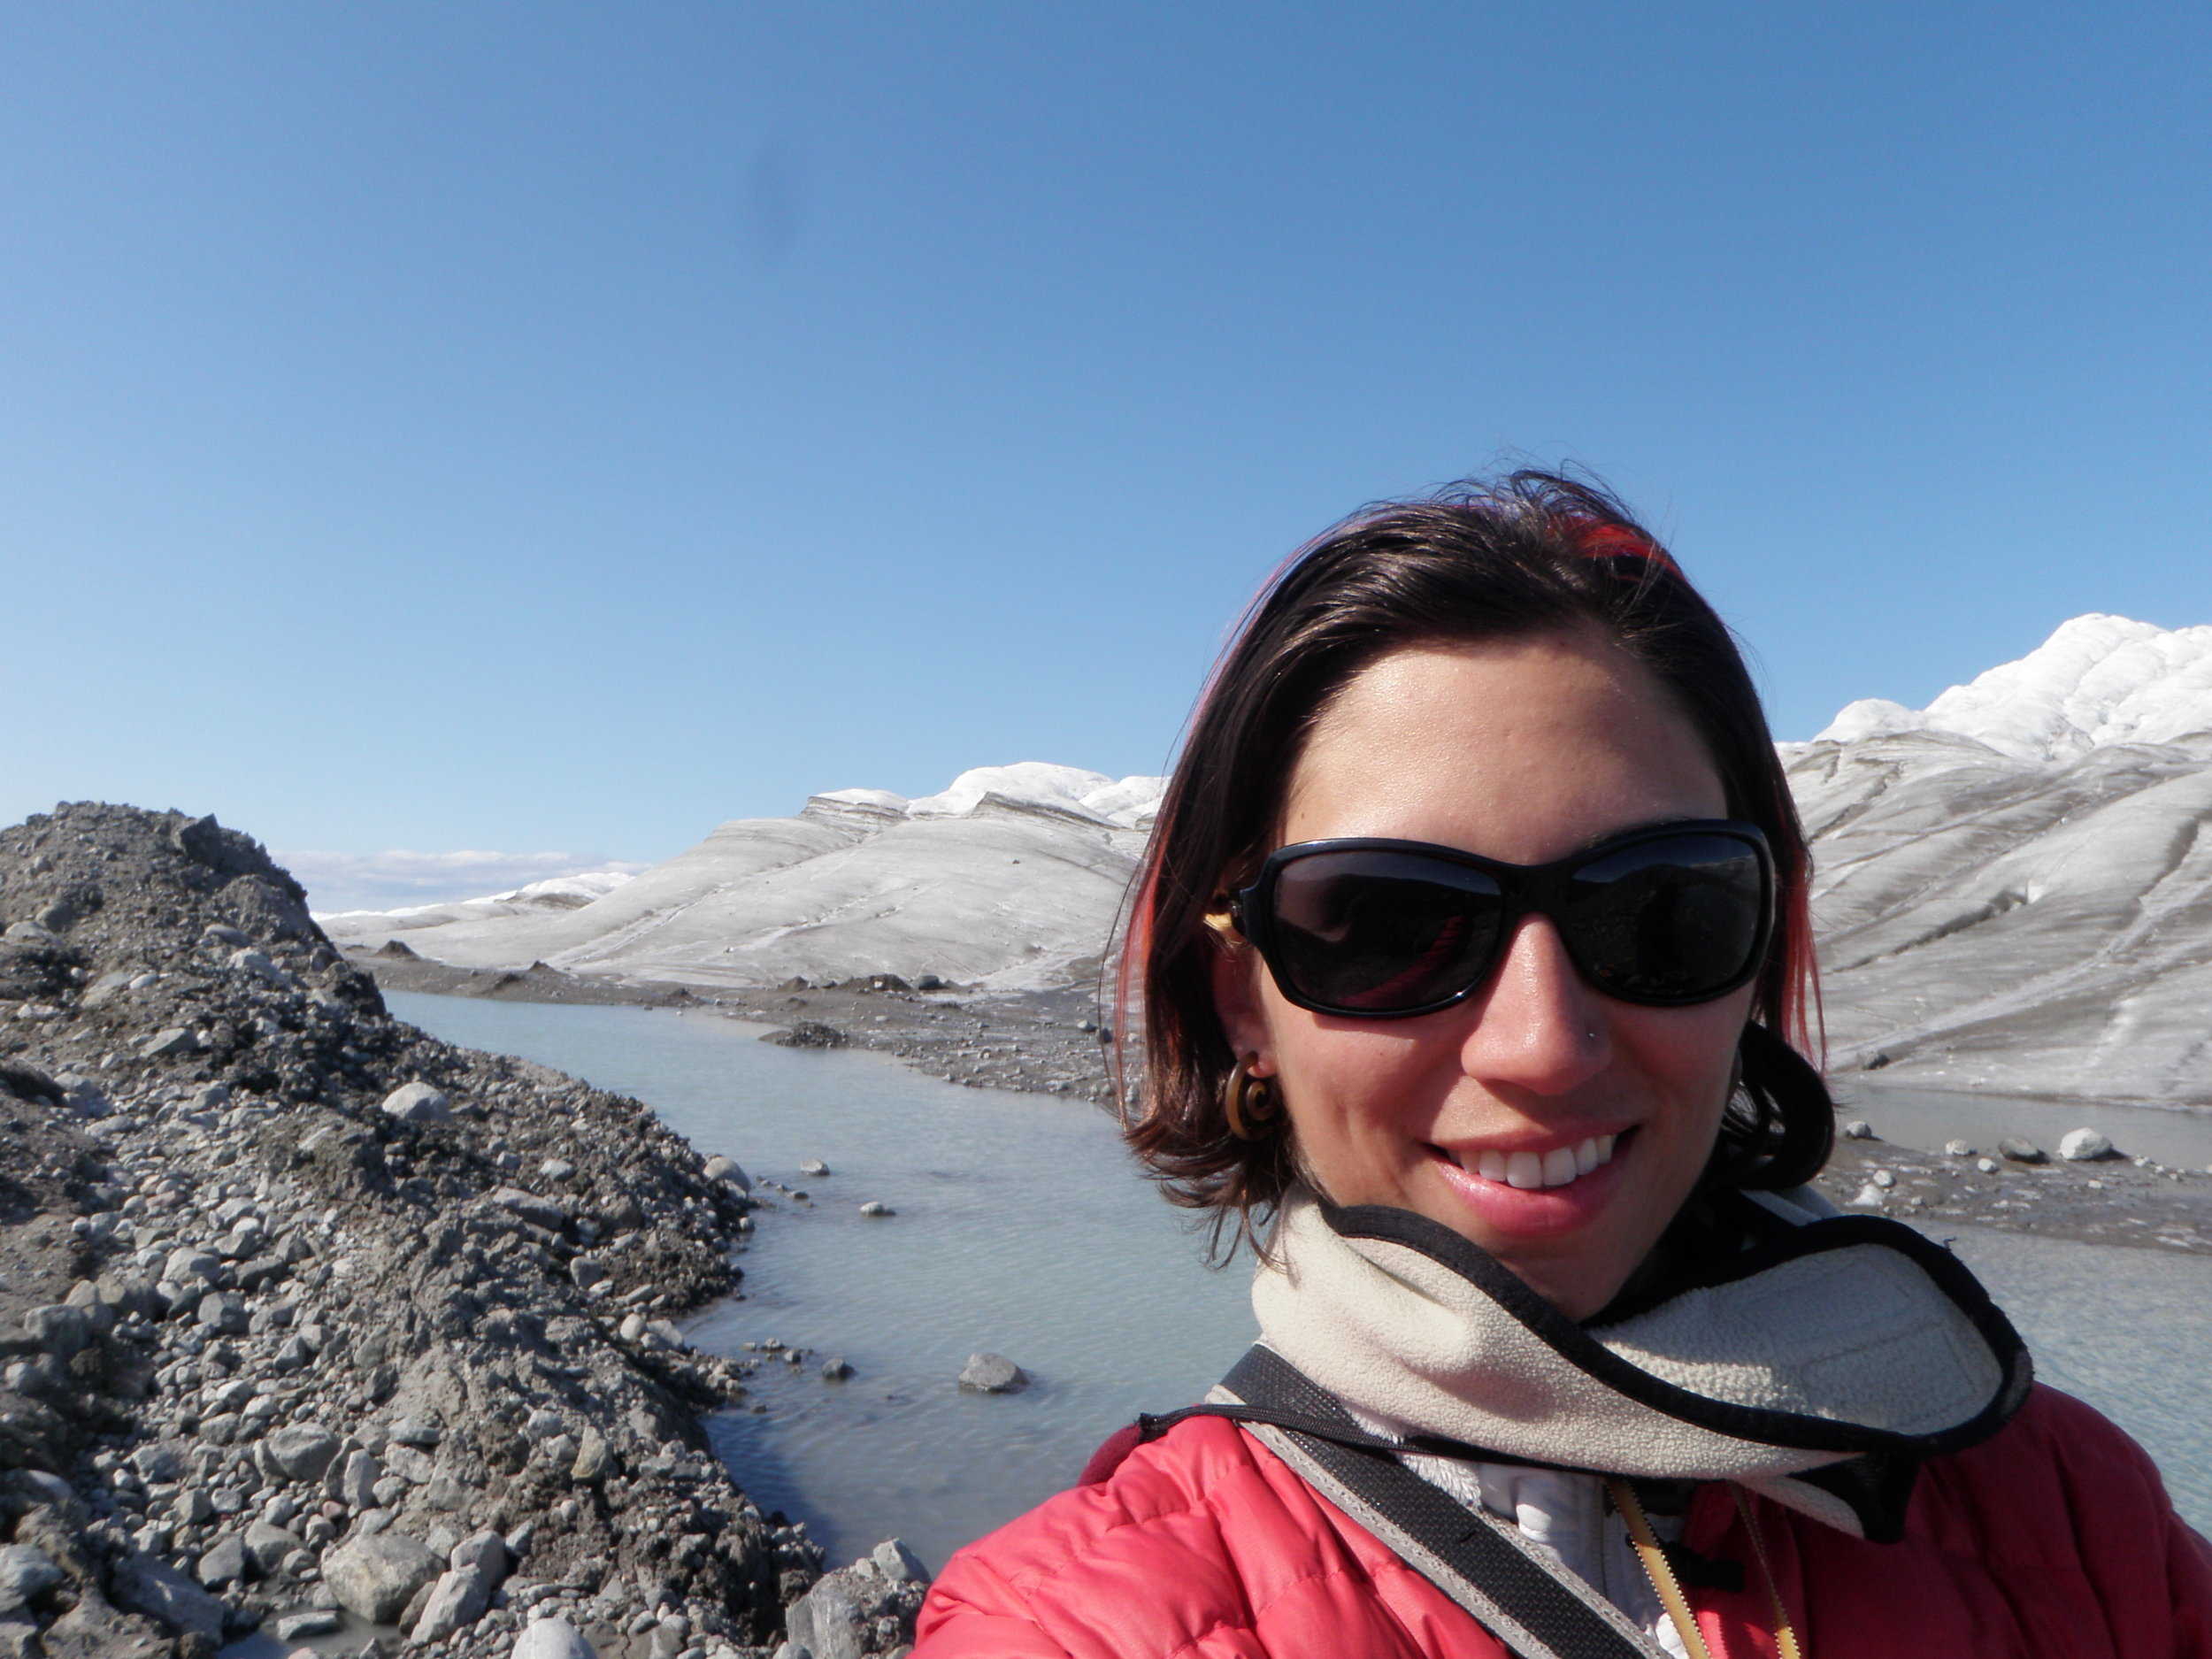 Simone Whitecloud, a Ph.D. candidate in Ecology at Dartmouth College traveled to Greenland this summer to help plan the upcoming Dartmouth IGERT summer curriculum.